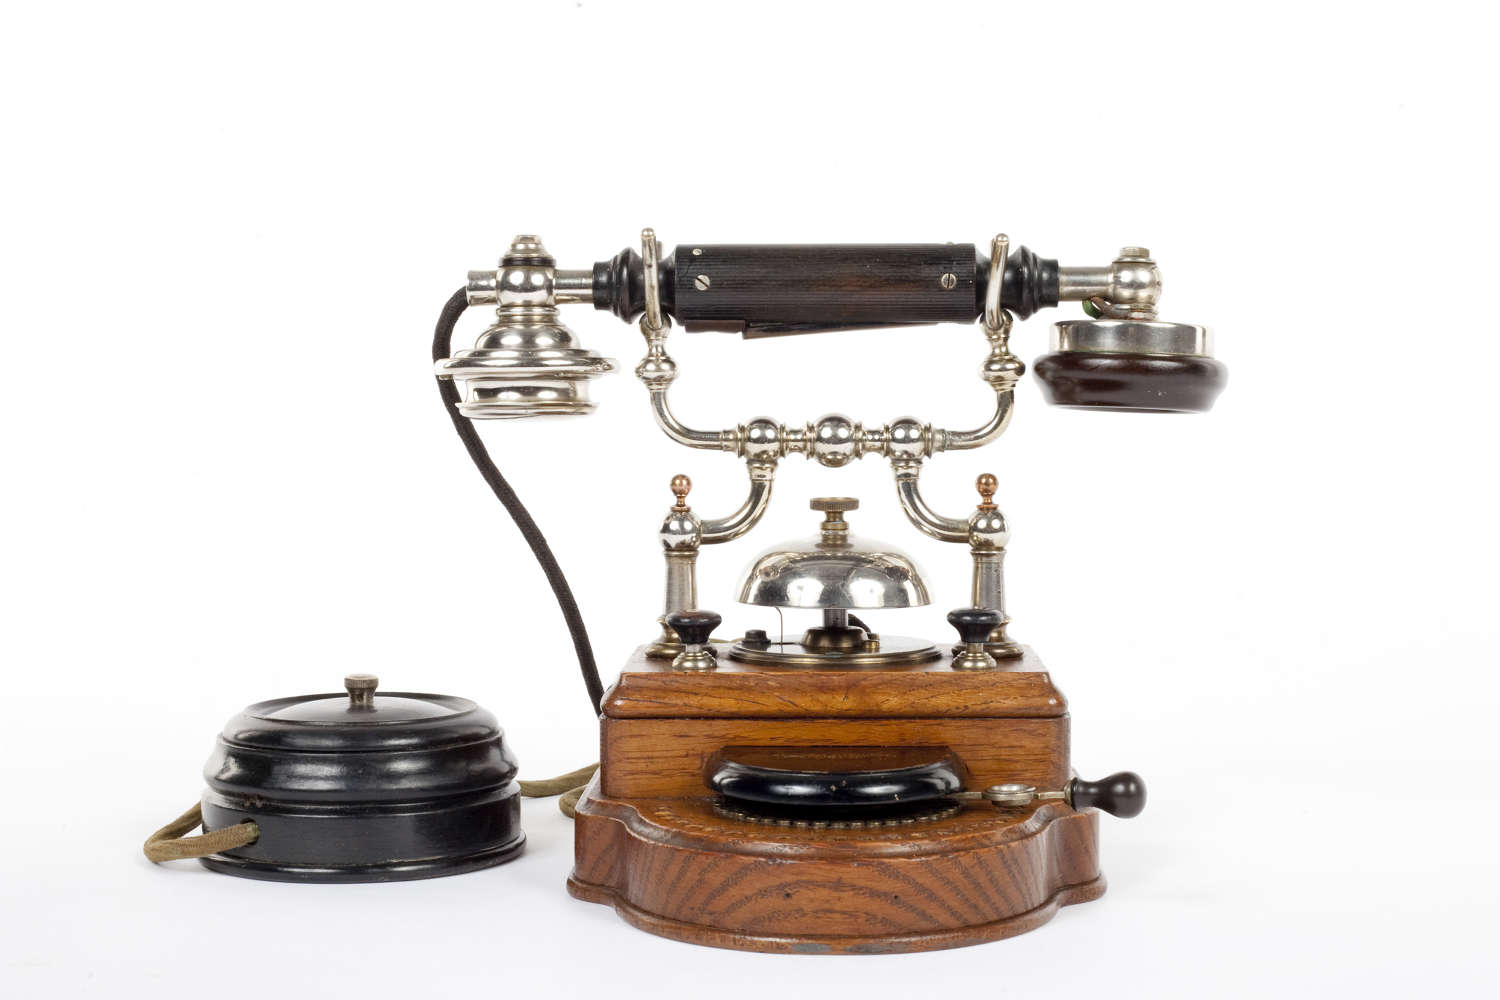 Early 20th century desk telephone